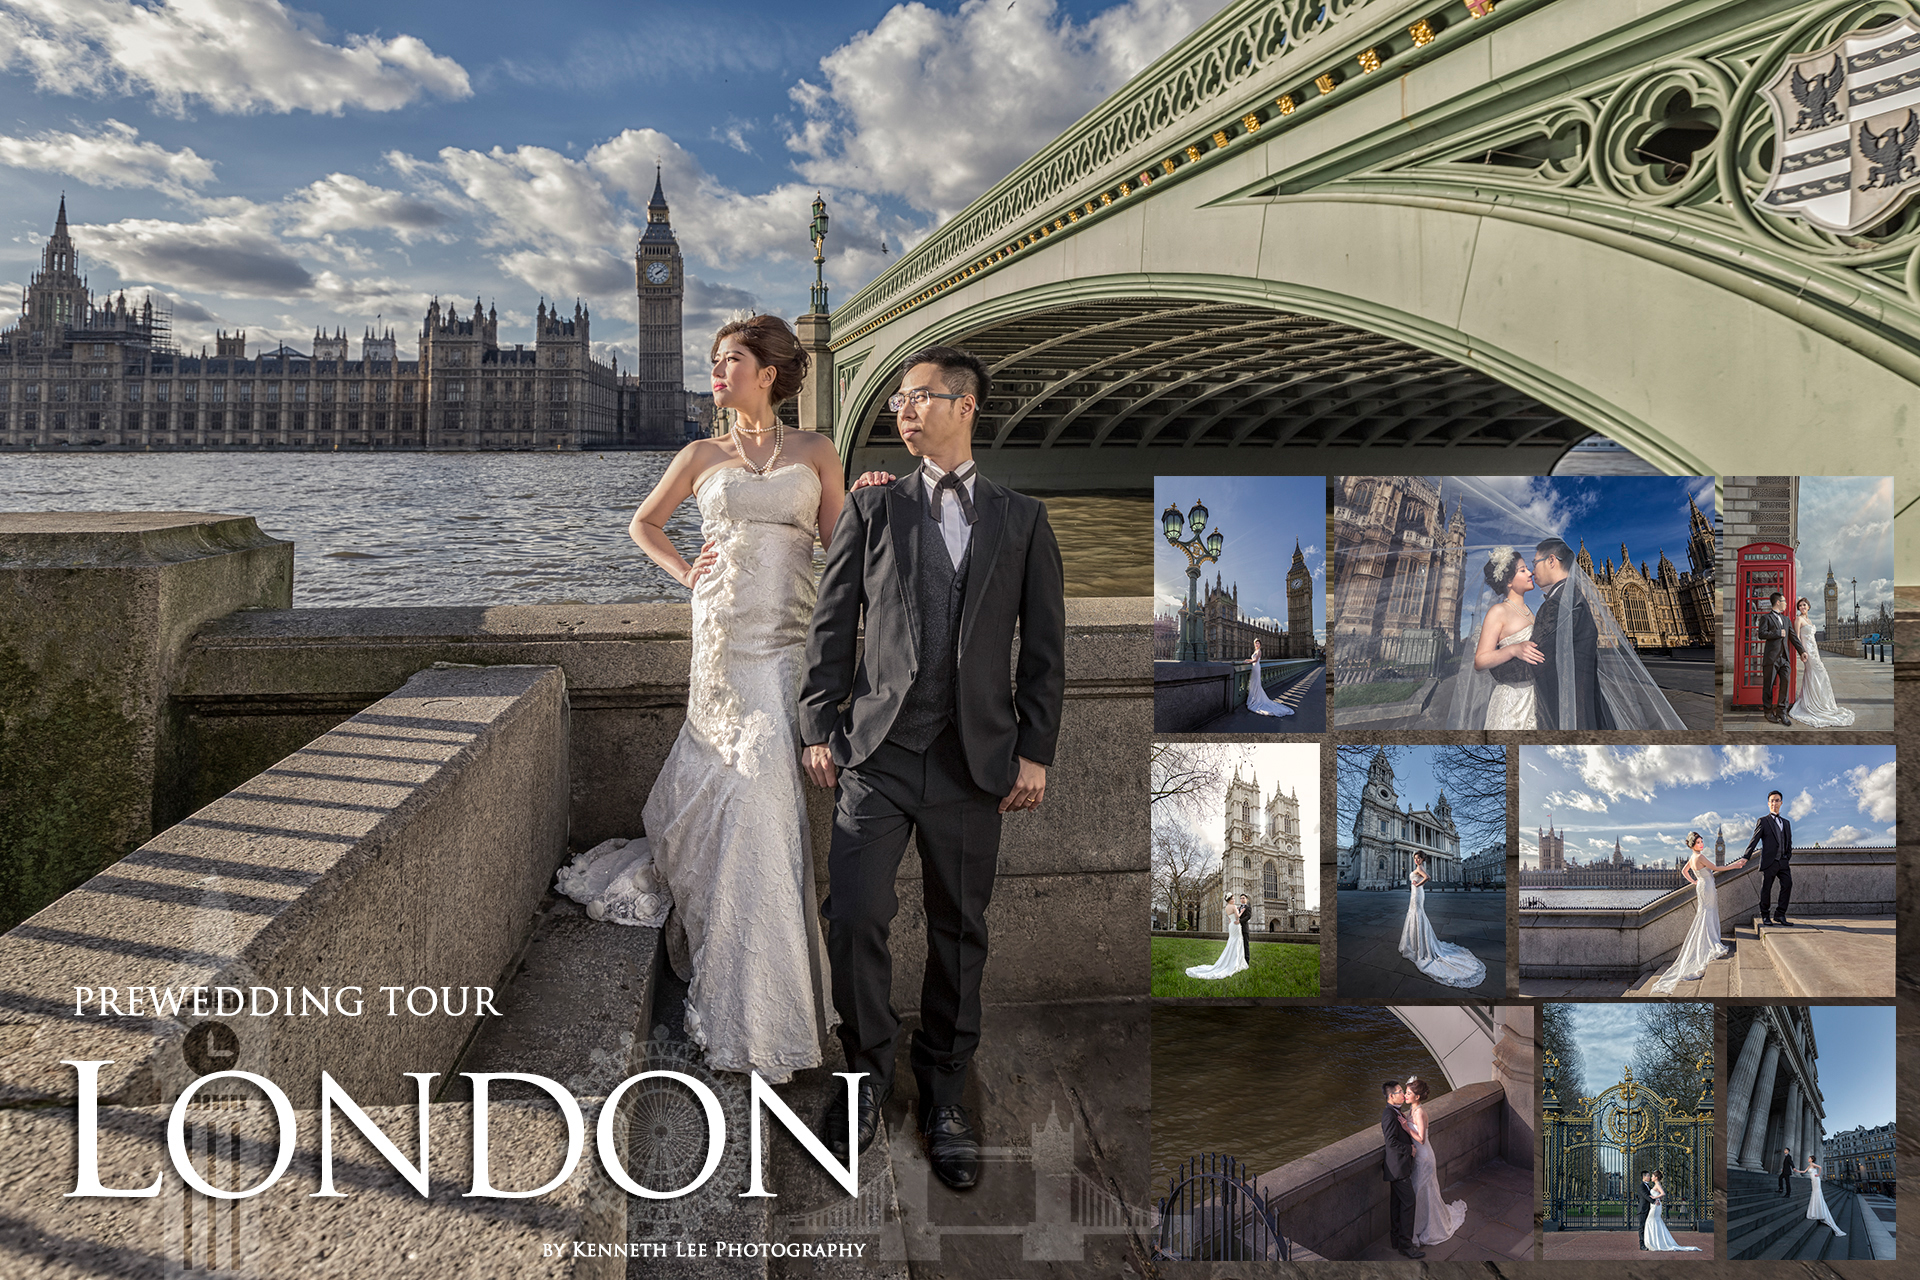 london_prewedding_tour.jpg